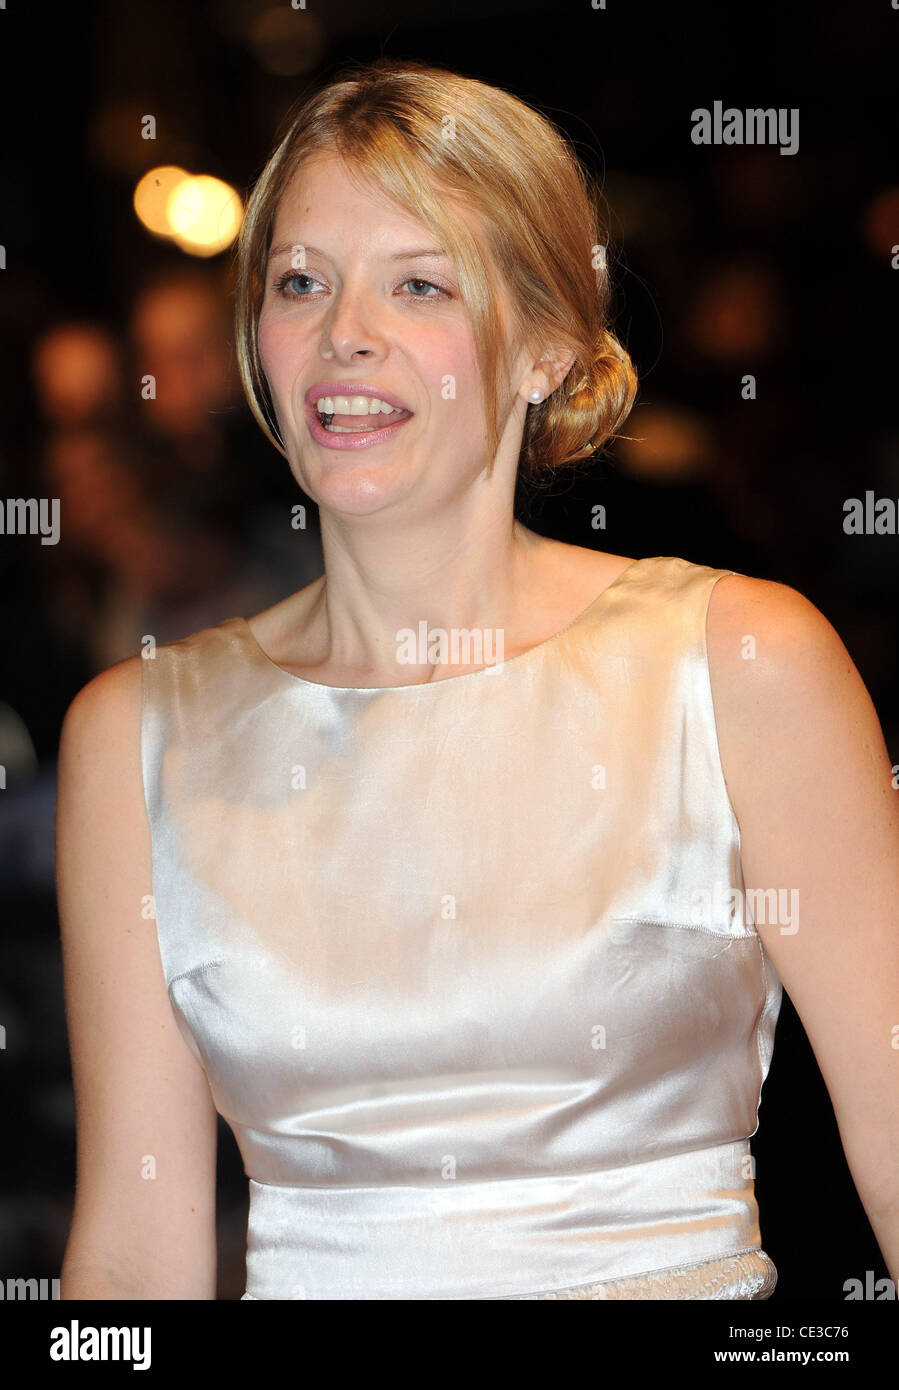 Andrea Lowe Andrea Lowe new picture